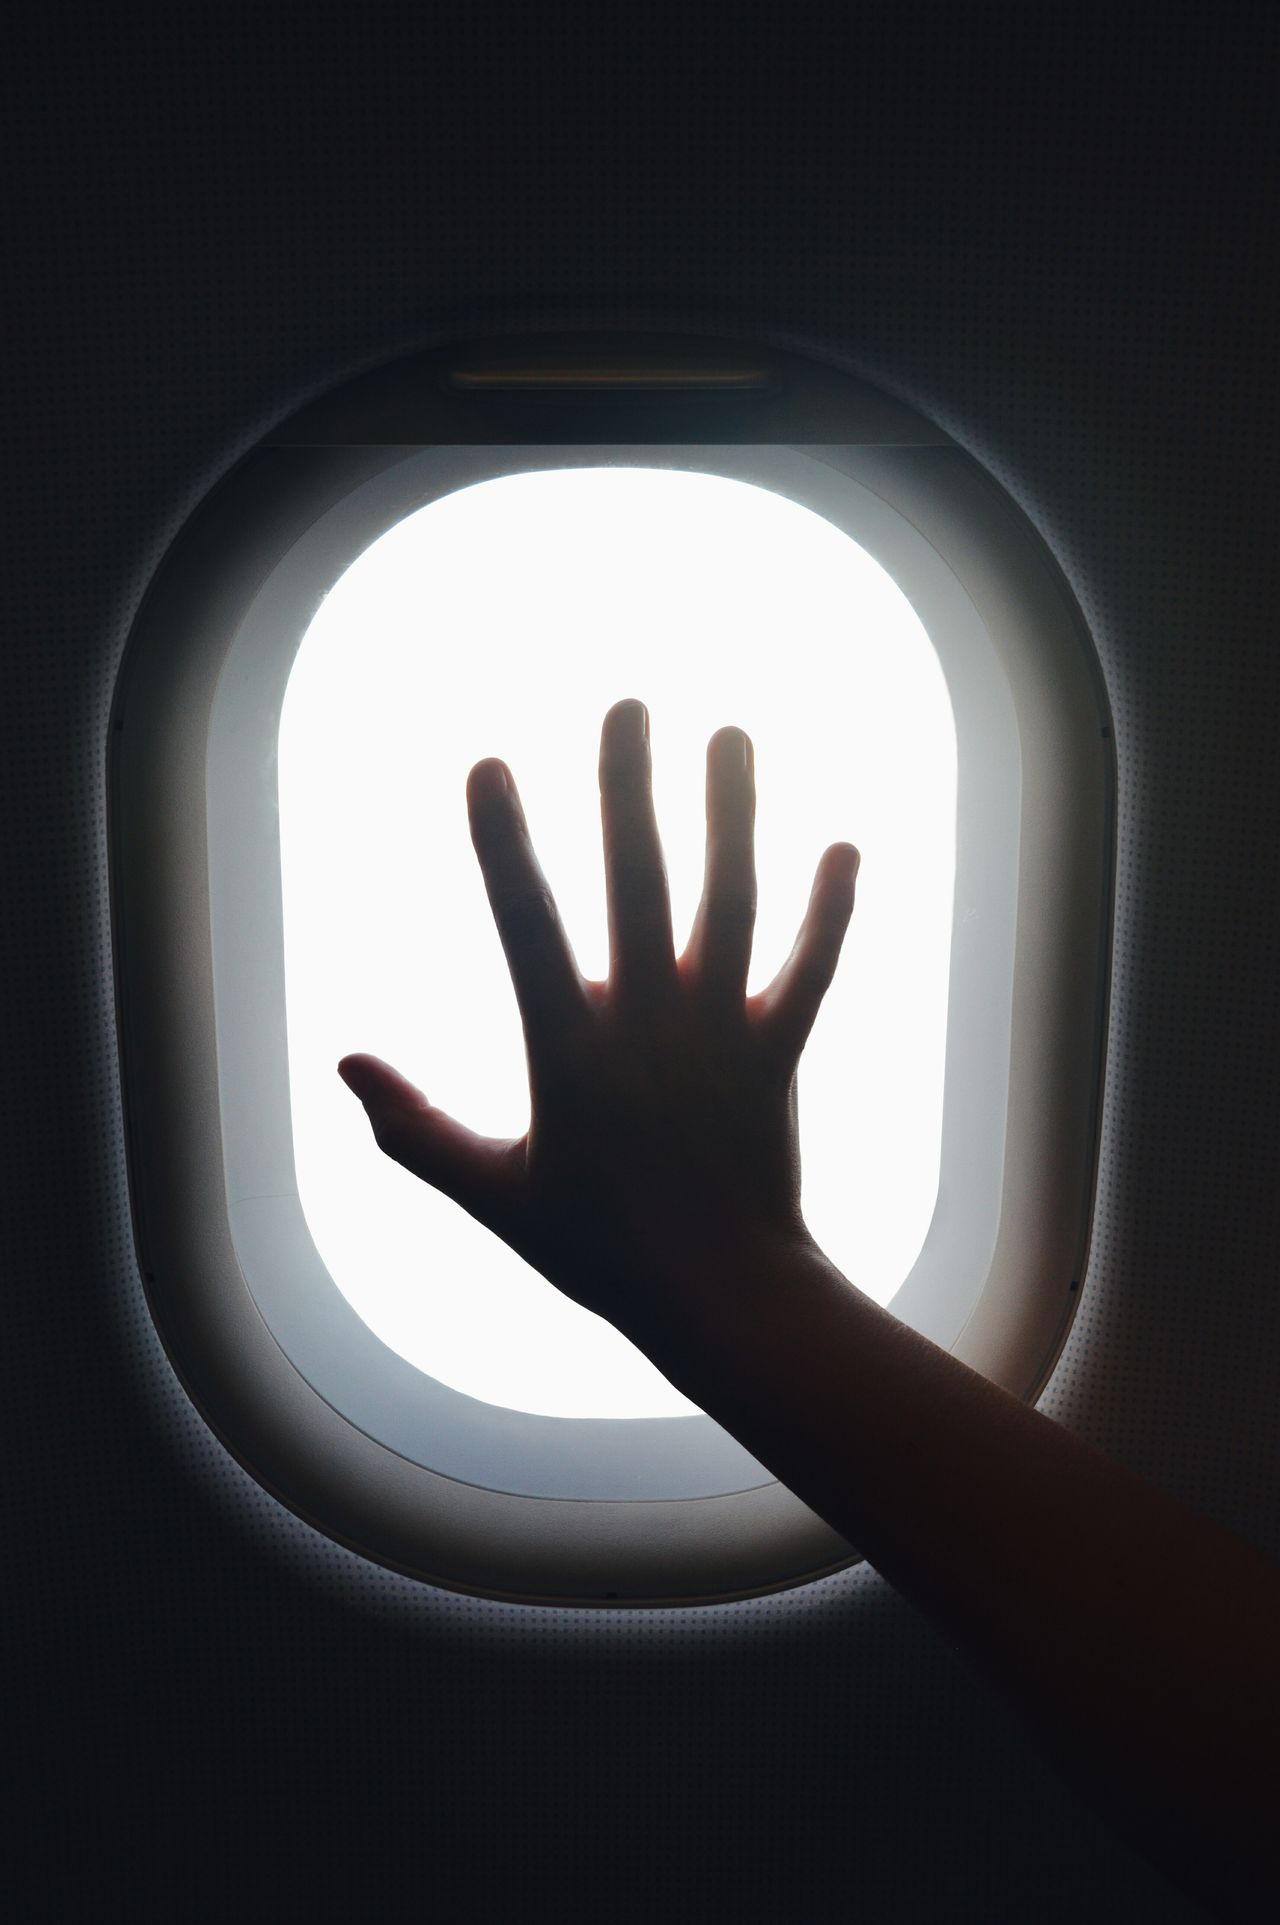 Traveling Home For The Holidays Hand Silhouette Shadow Indoors  Frosted Glass Traveling Window Airplane Flying Clouds Heading Home Africa